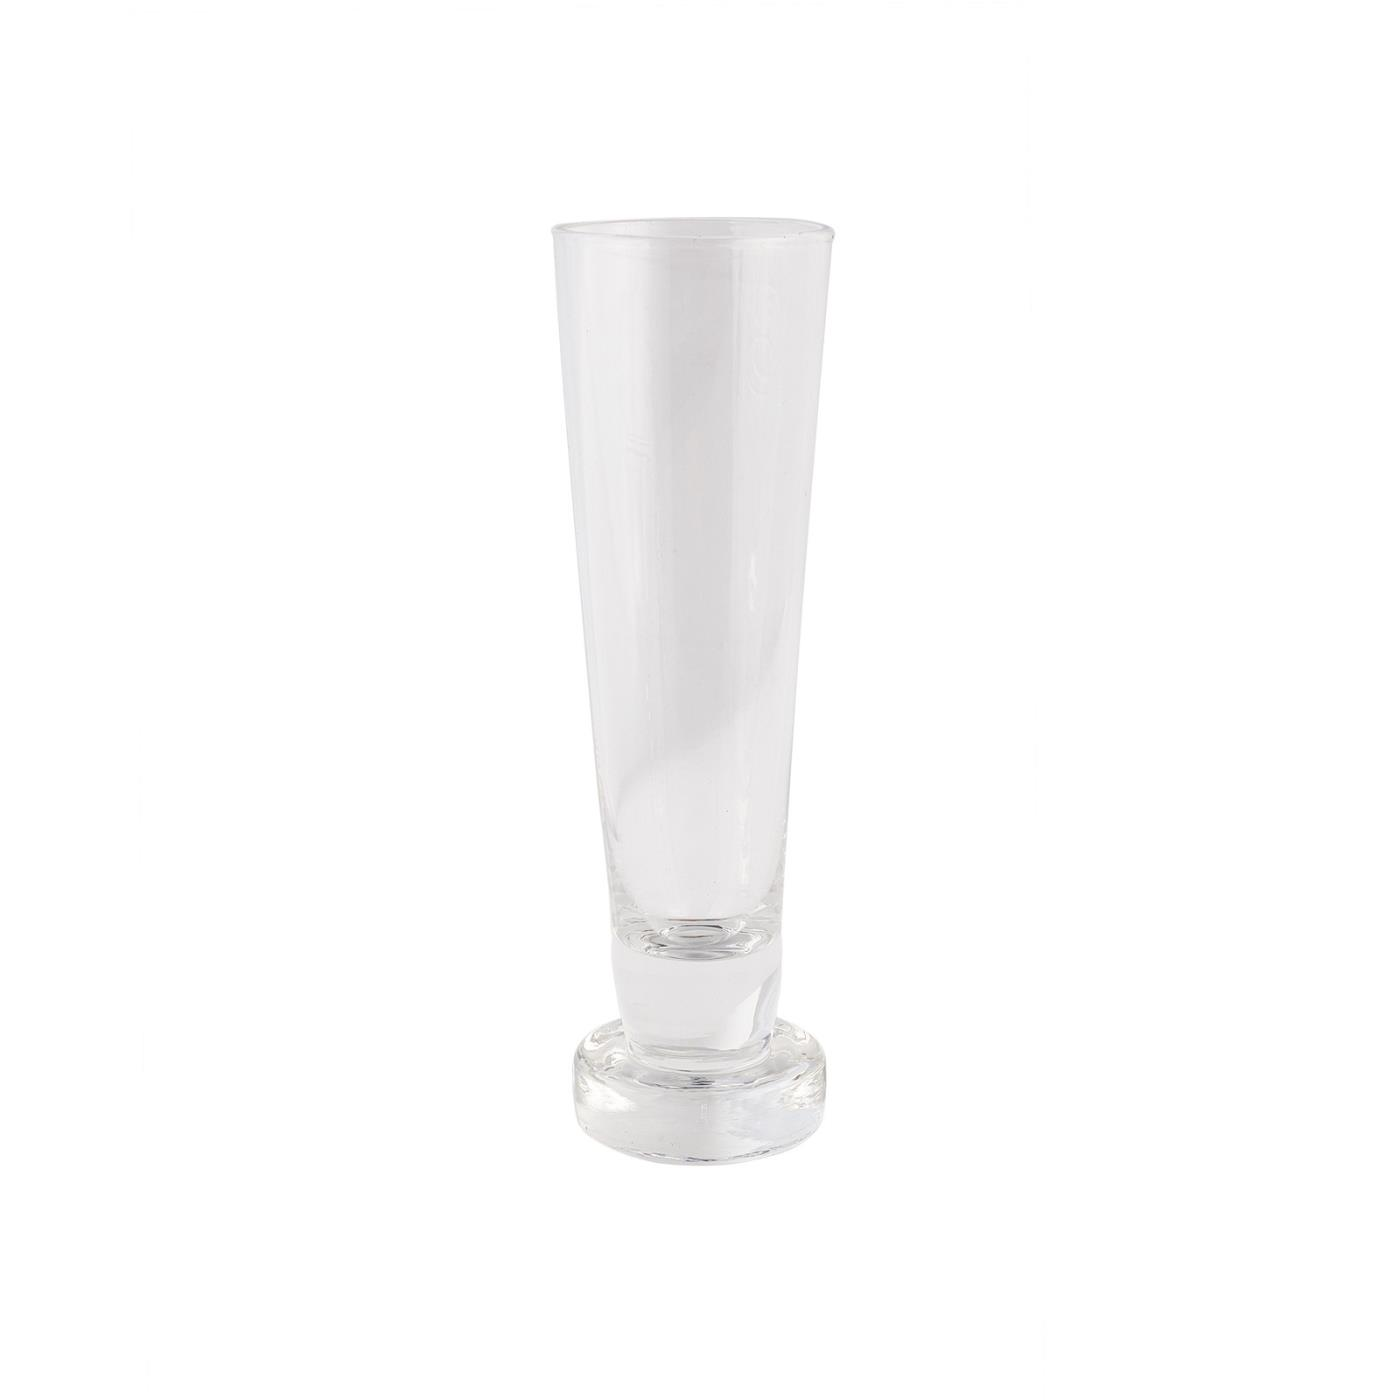 Tini Vodka Glass